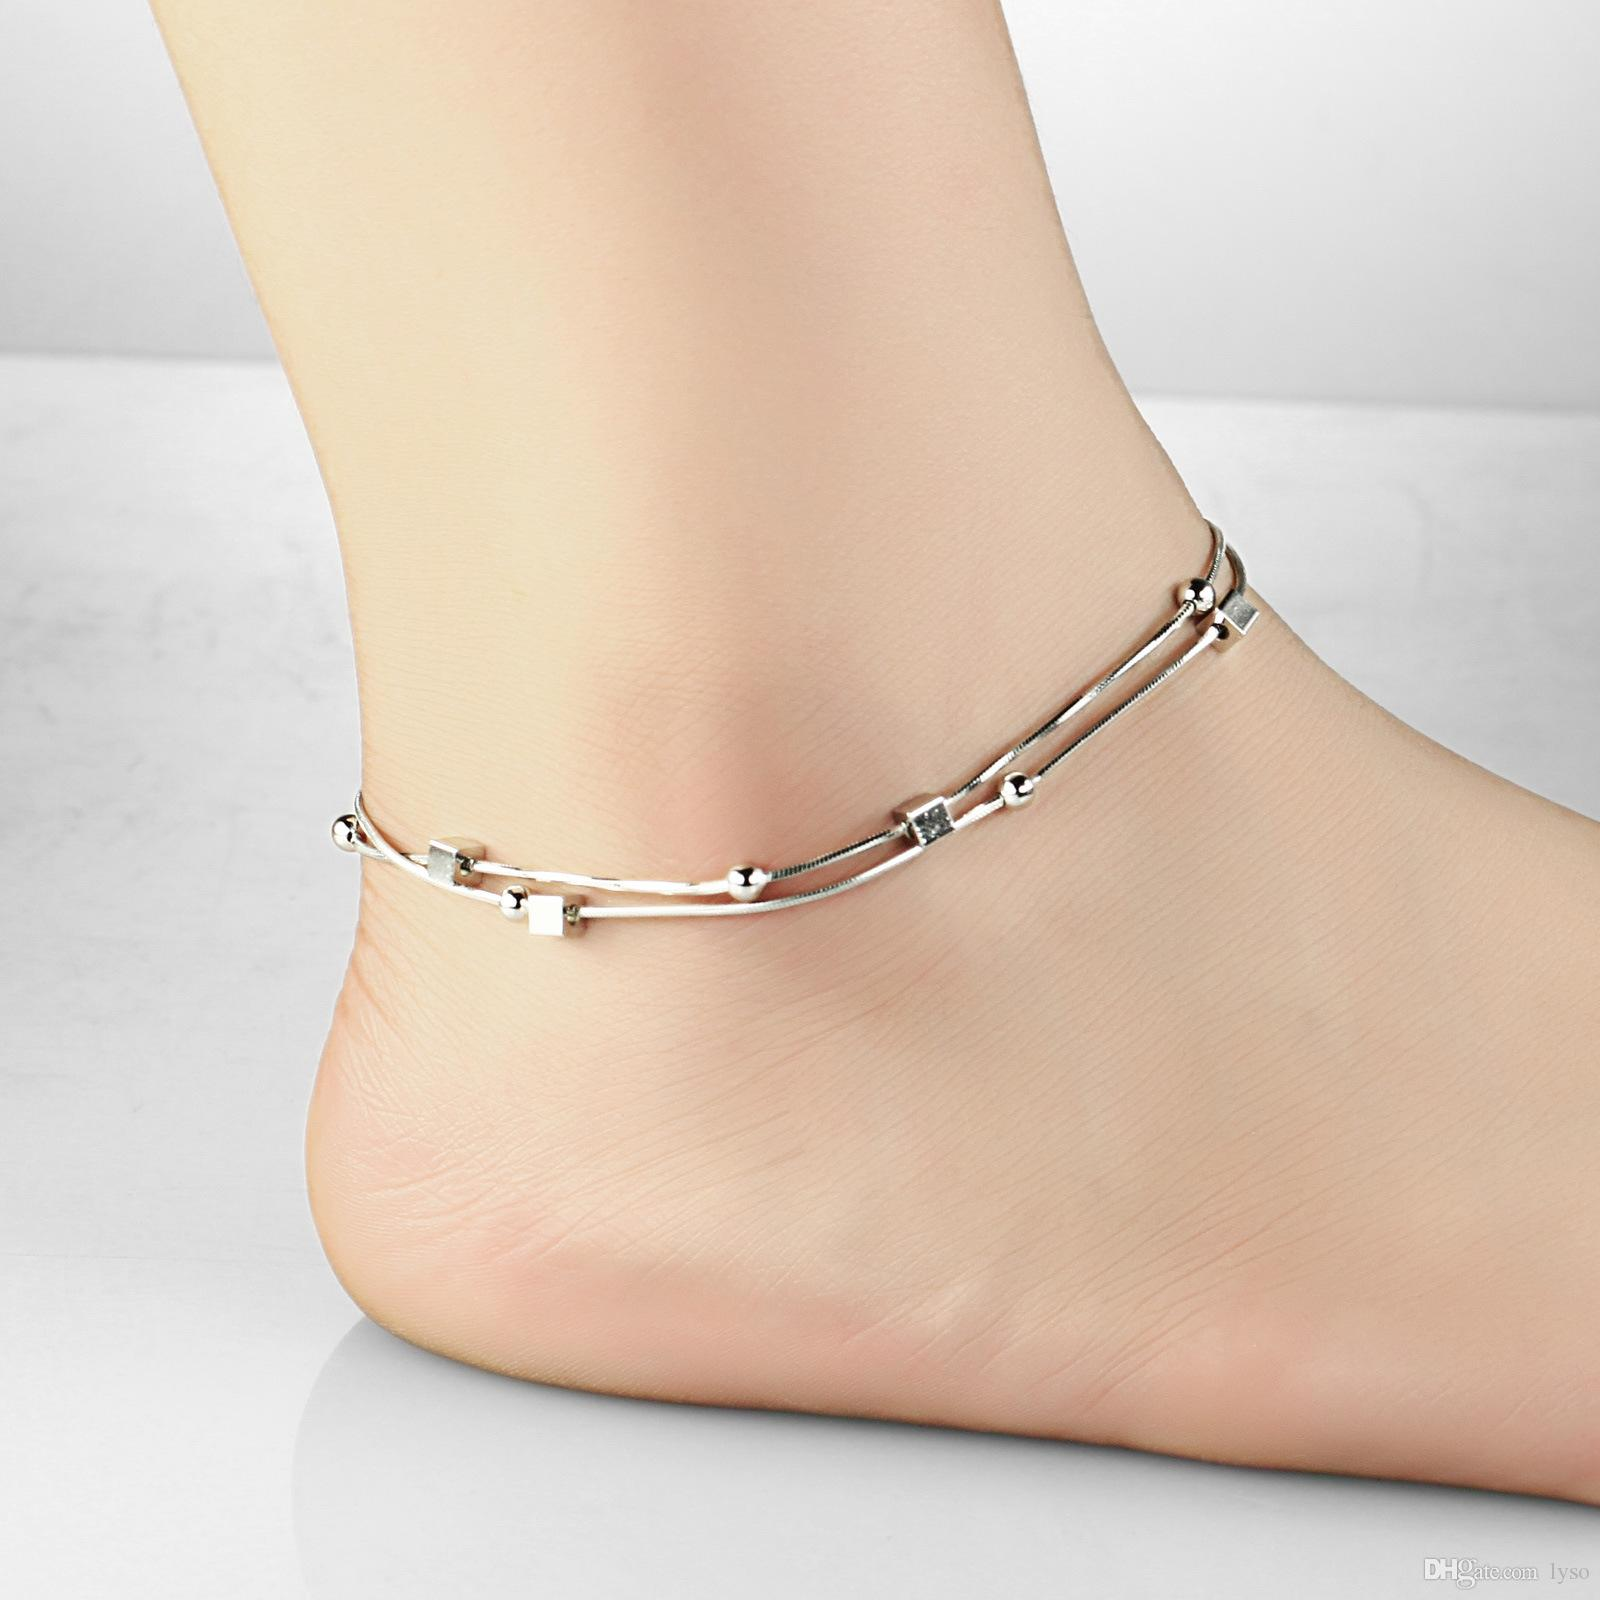 gold free size anklet designer ankletpayal gram copy of one payal griiham plated products guaranteed